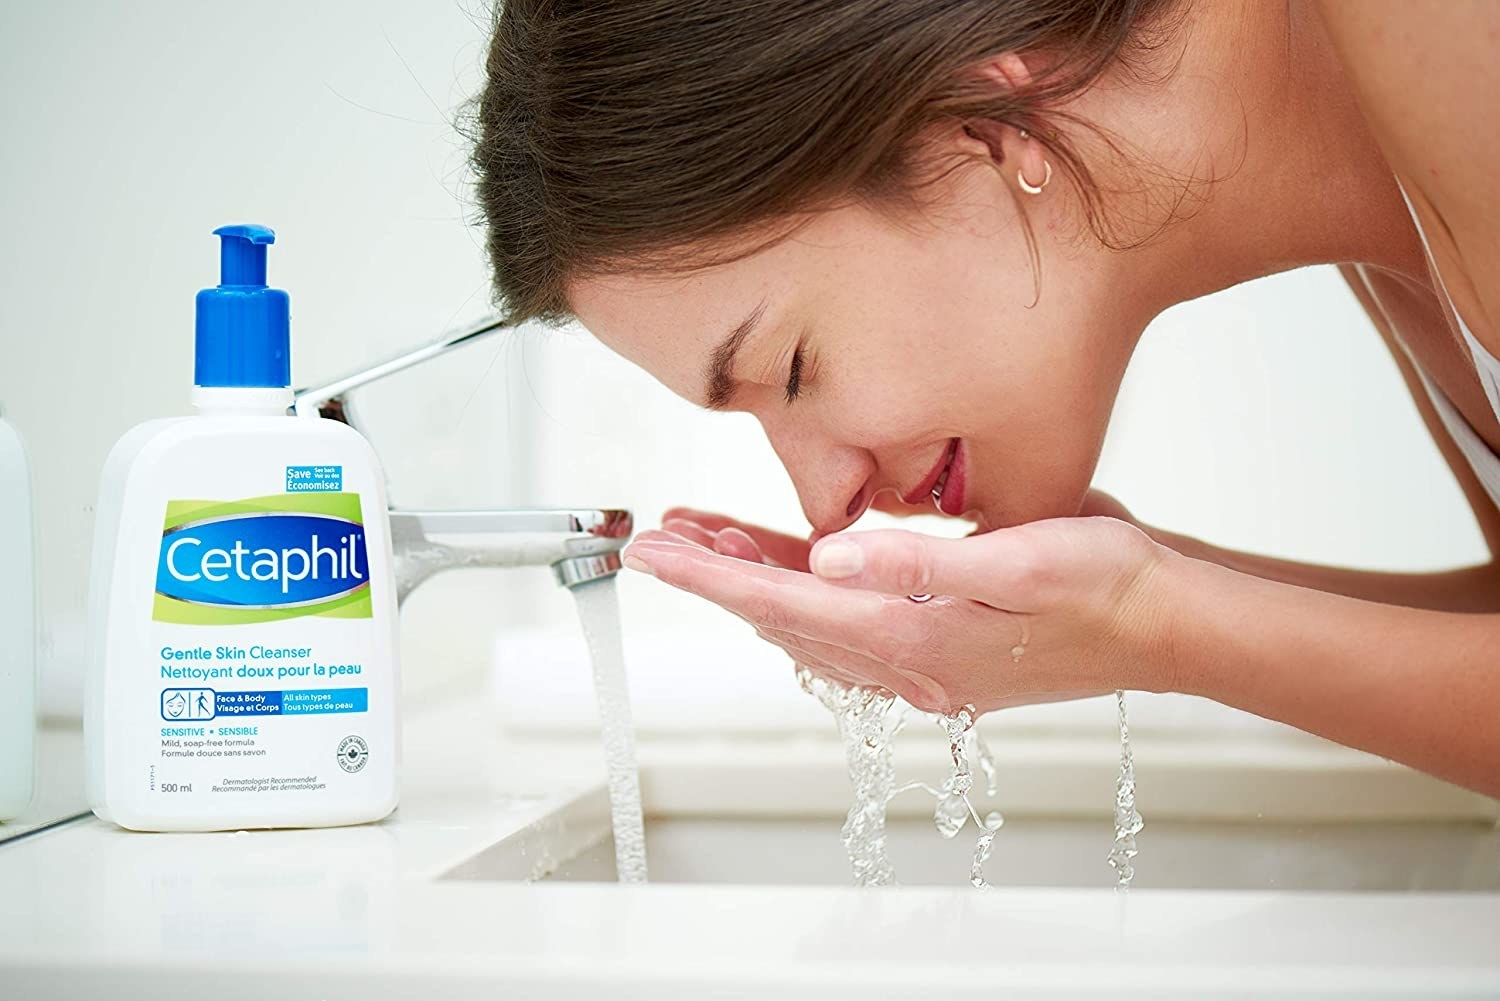 A person washing their face at a bathroom sink with a bottle of cleanser beside them